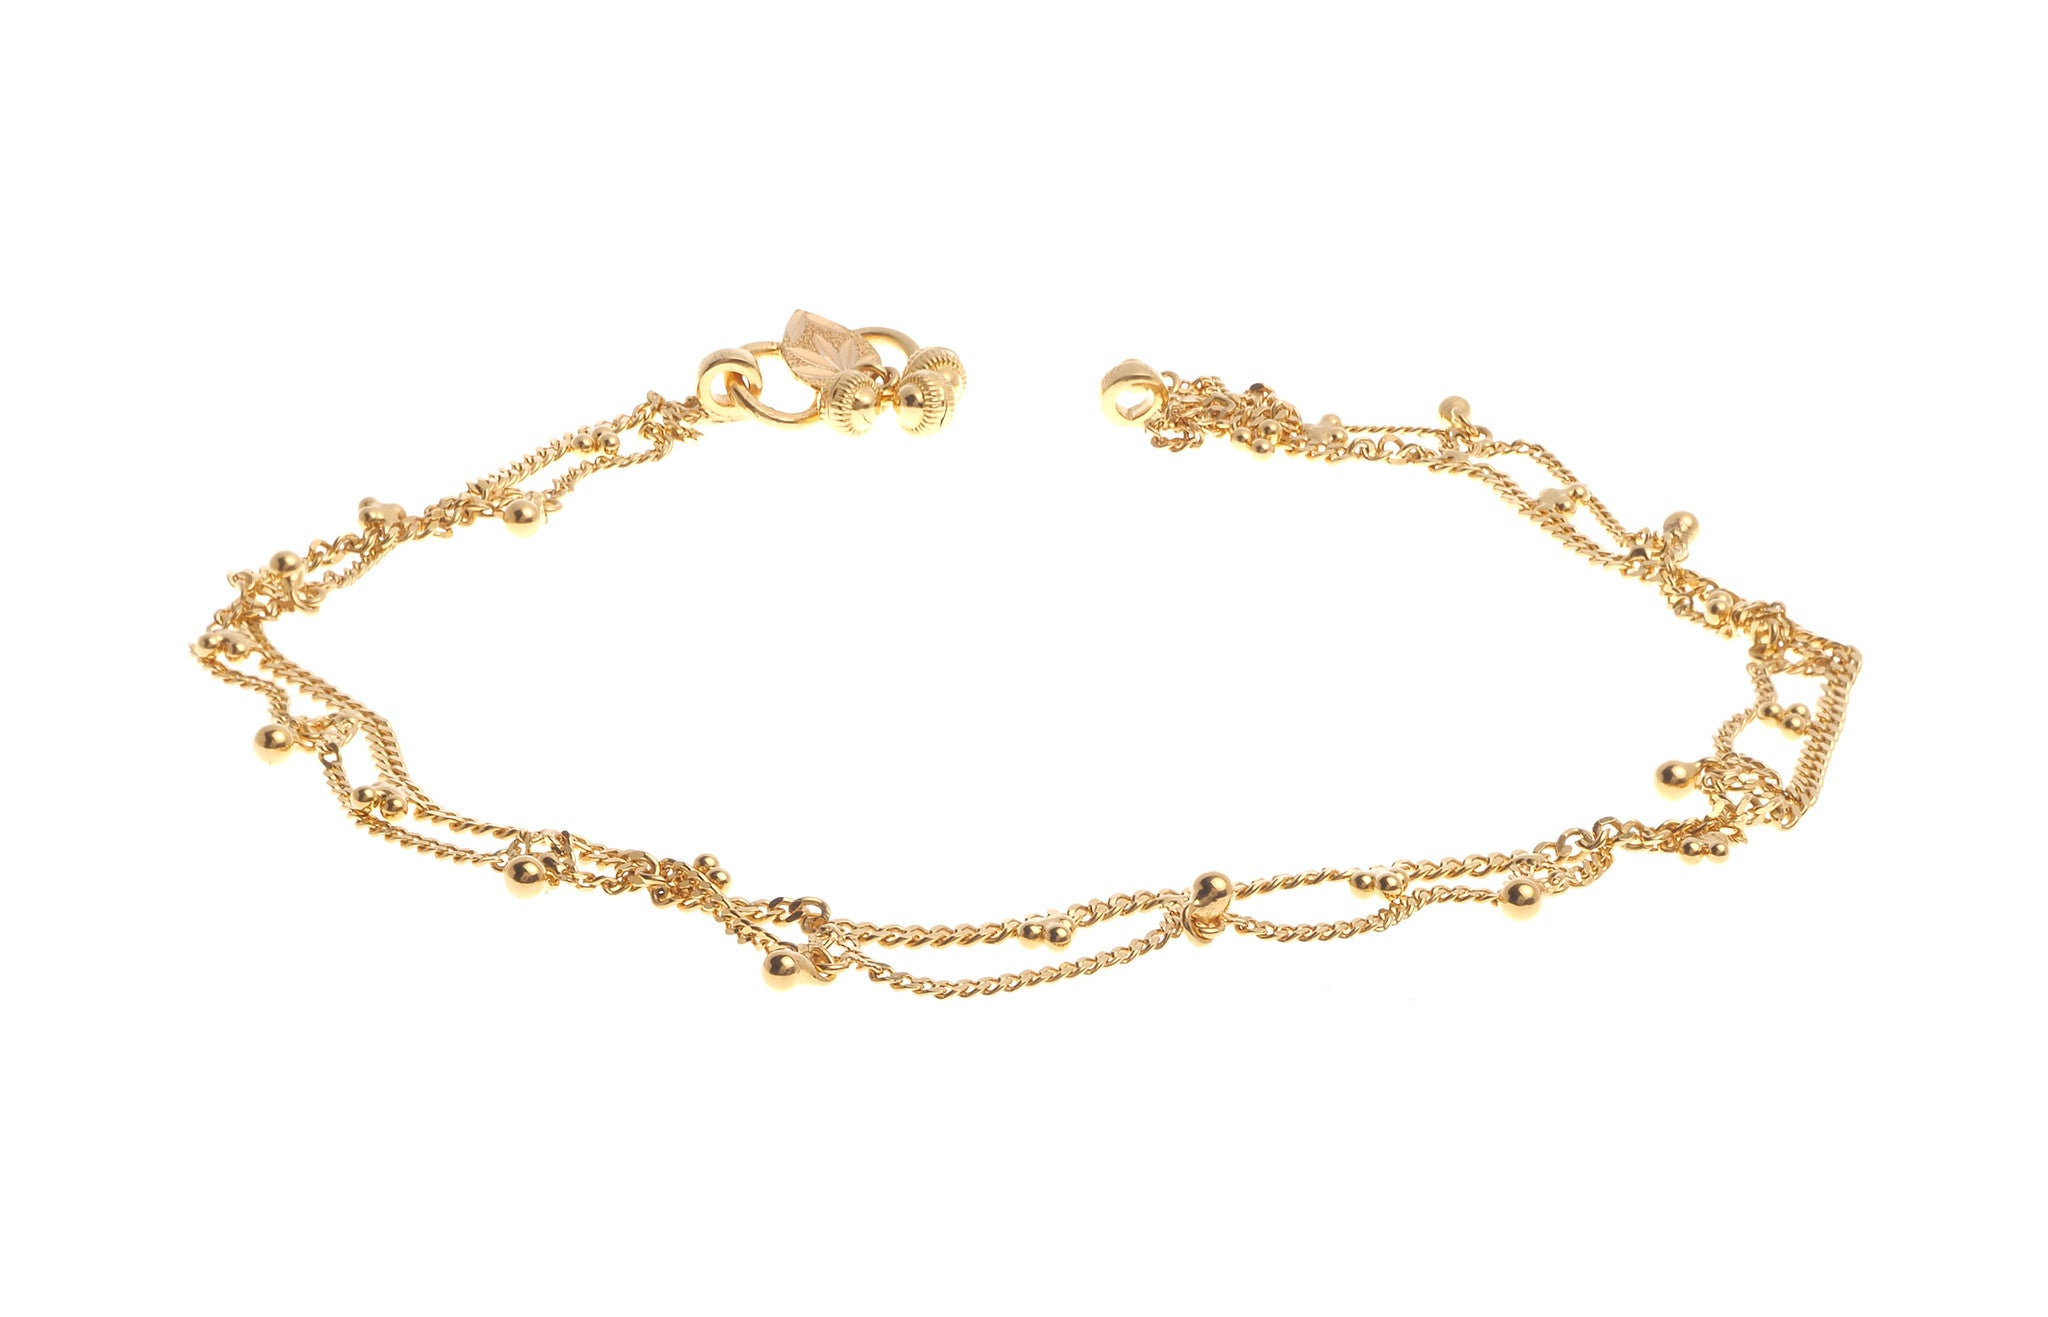 gold filled in oblacoder bracelet symbolism ankle carat pretty elephant lucky bracelets anklet jewelry patriotic bling